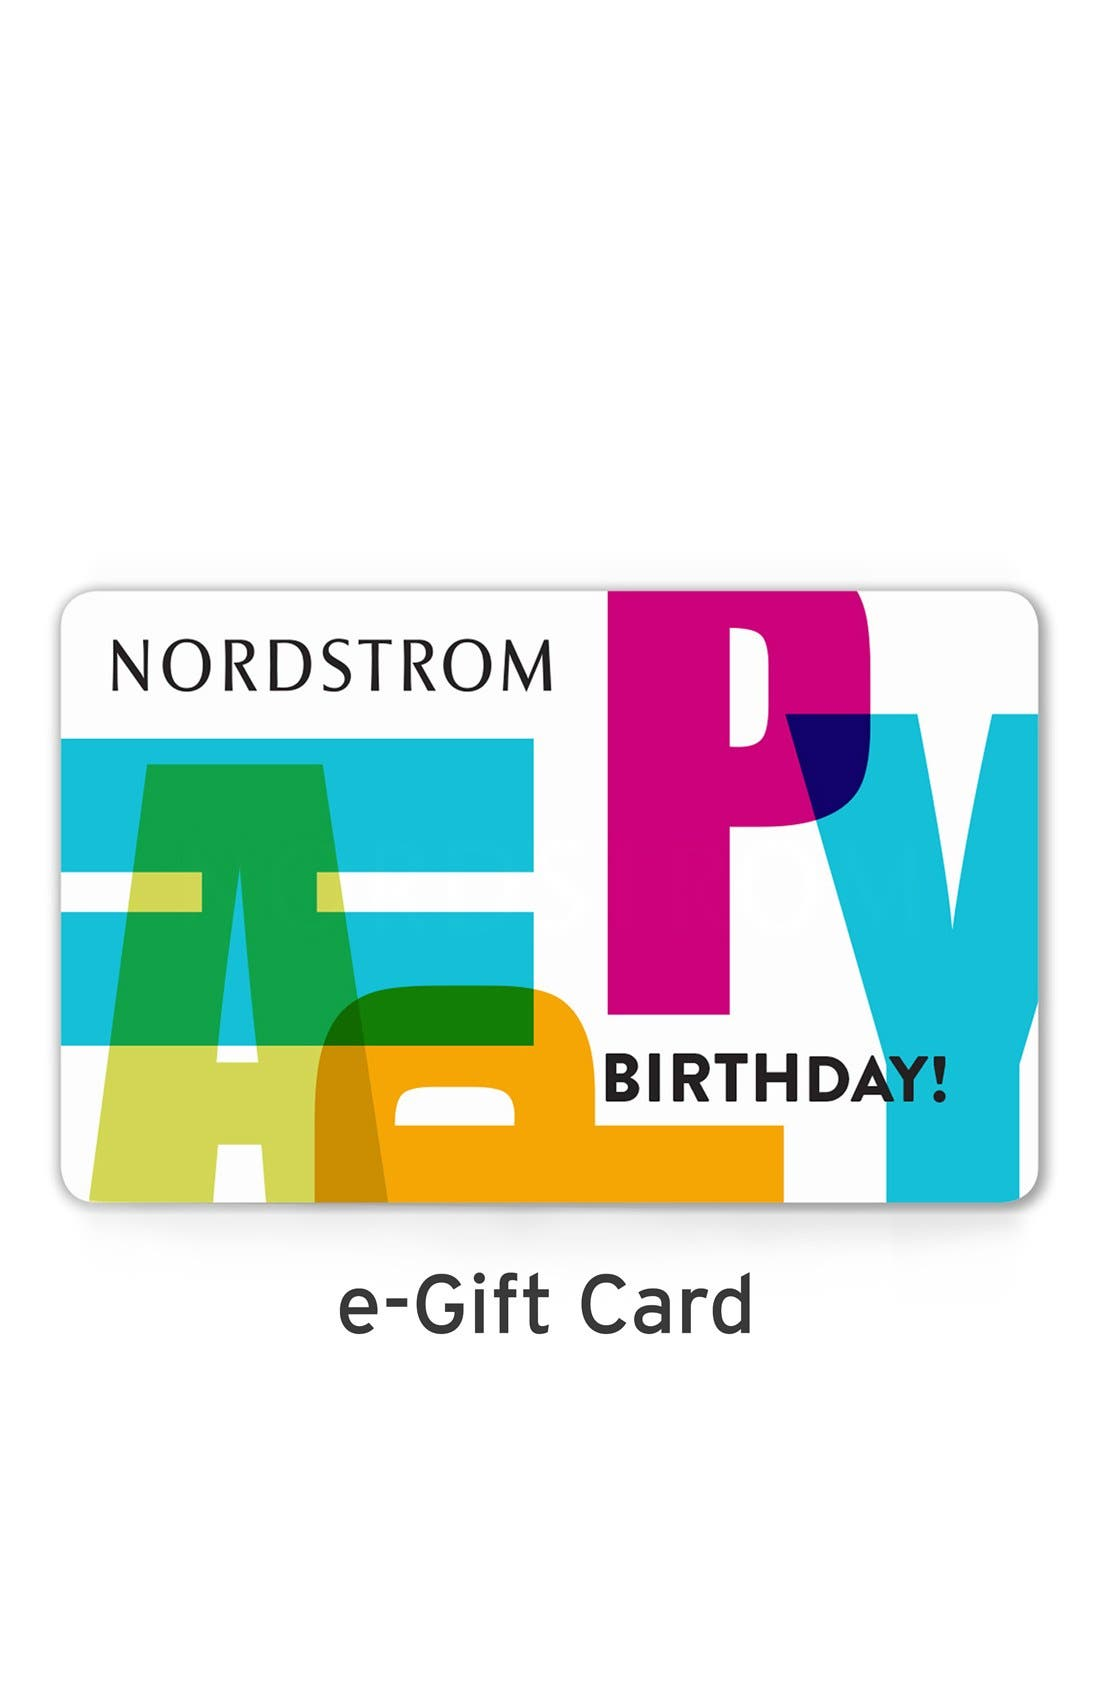 e-Gift Card Happy Birthday